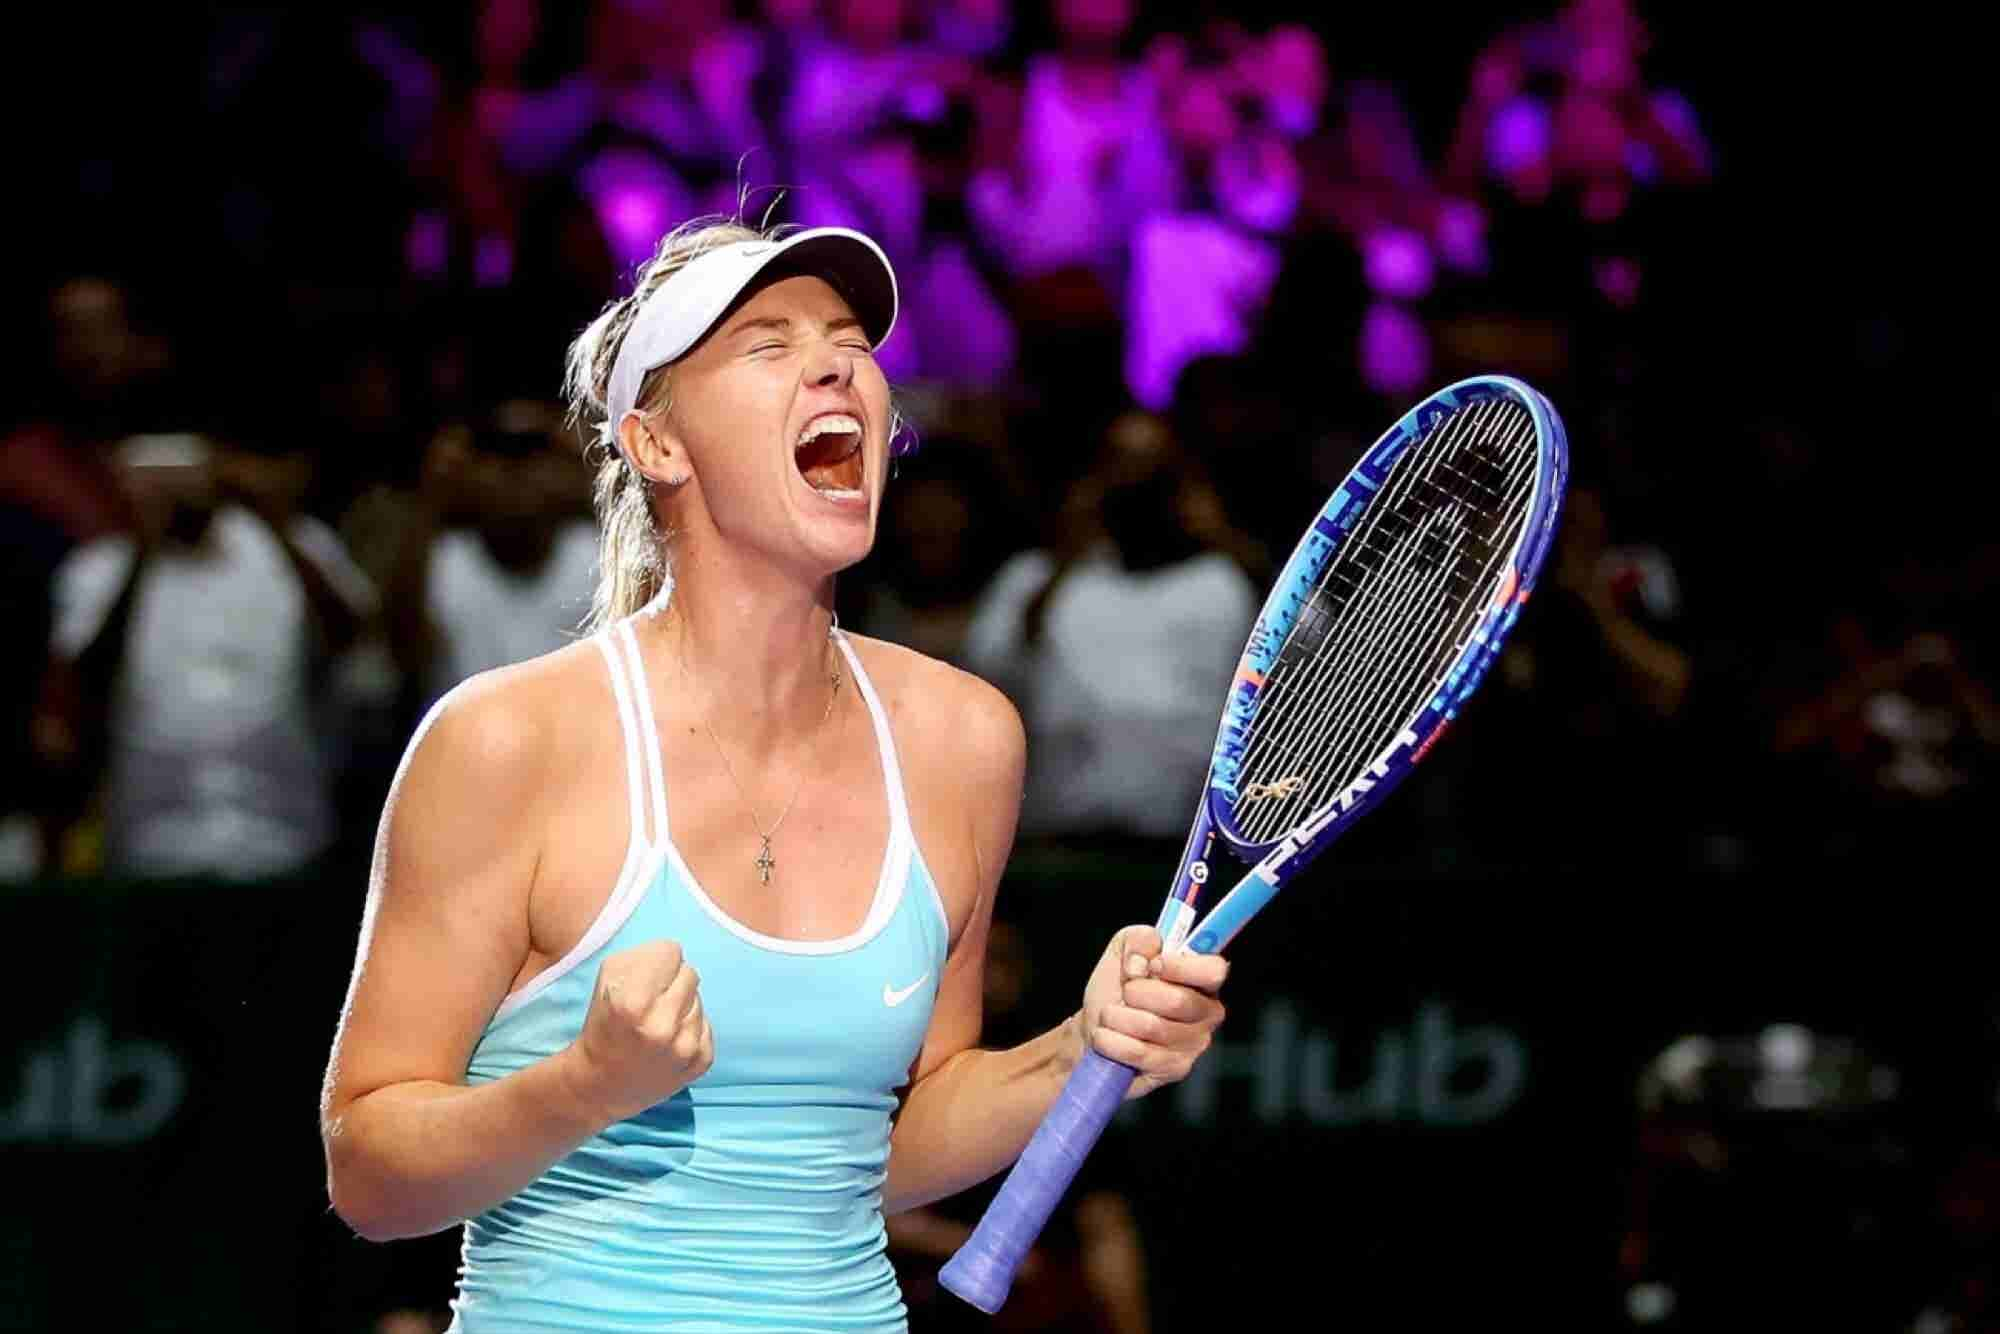 Maria Sharapova to Attend Harvard Program Amidst Doping Scandal